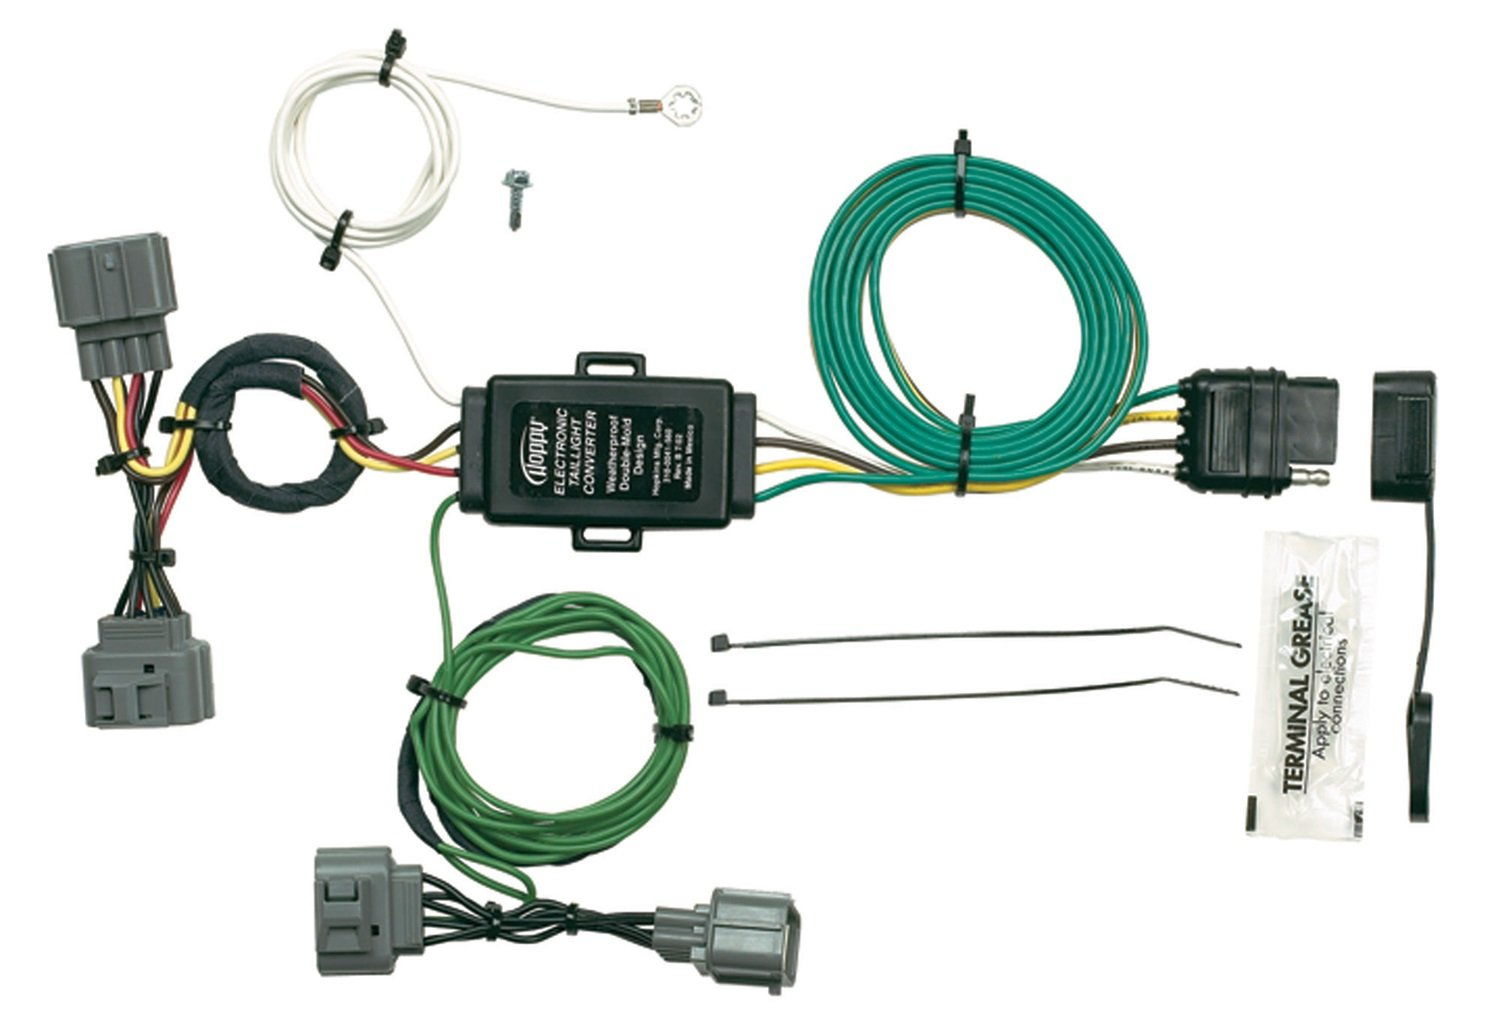 61uhFx0L6RL._SL1500_ amazon com hopkins 43125 plug in simple vehicle wiring kit honda ridgeline trailer wiring harness at fashall.co